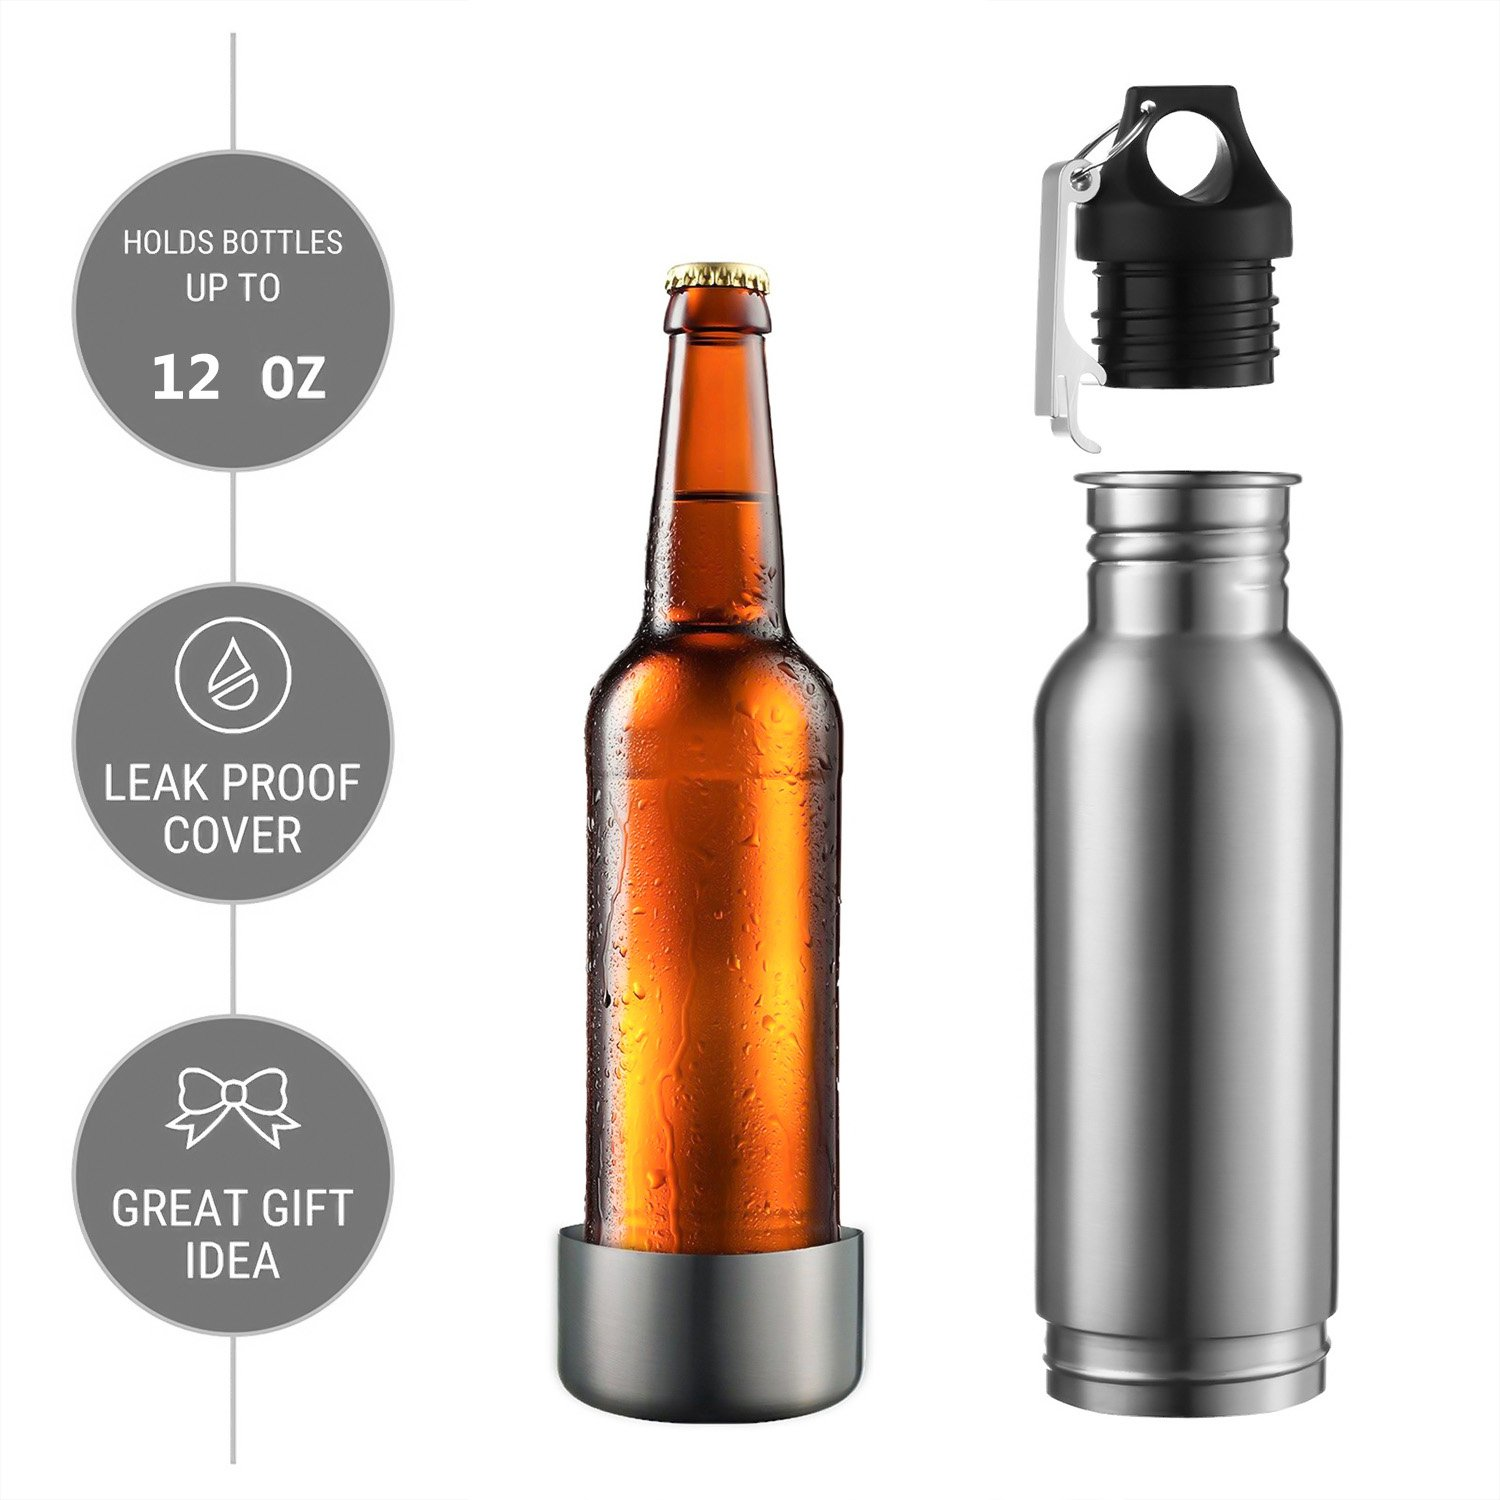 Fits 12 oz Bottles with Bottle Opener for Any Of Life Adventure Beer Bottle Cooler Universal Stainless Steel Cold Beer Keeper Armor Insulator Keep Beer Cold and Tasty Longer Red